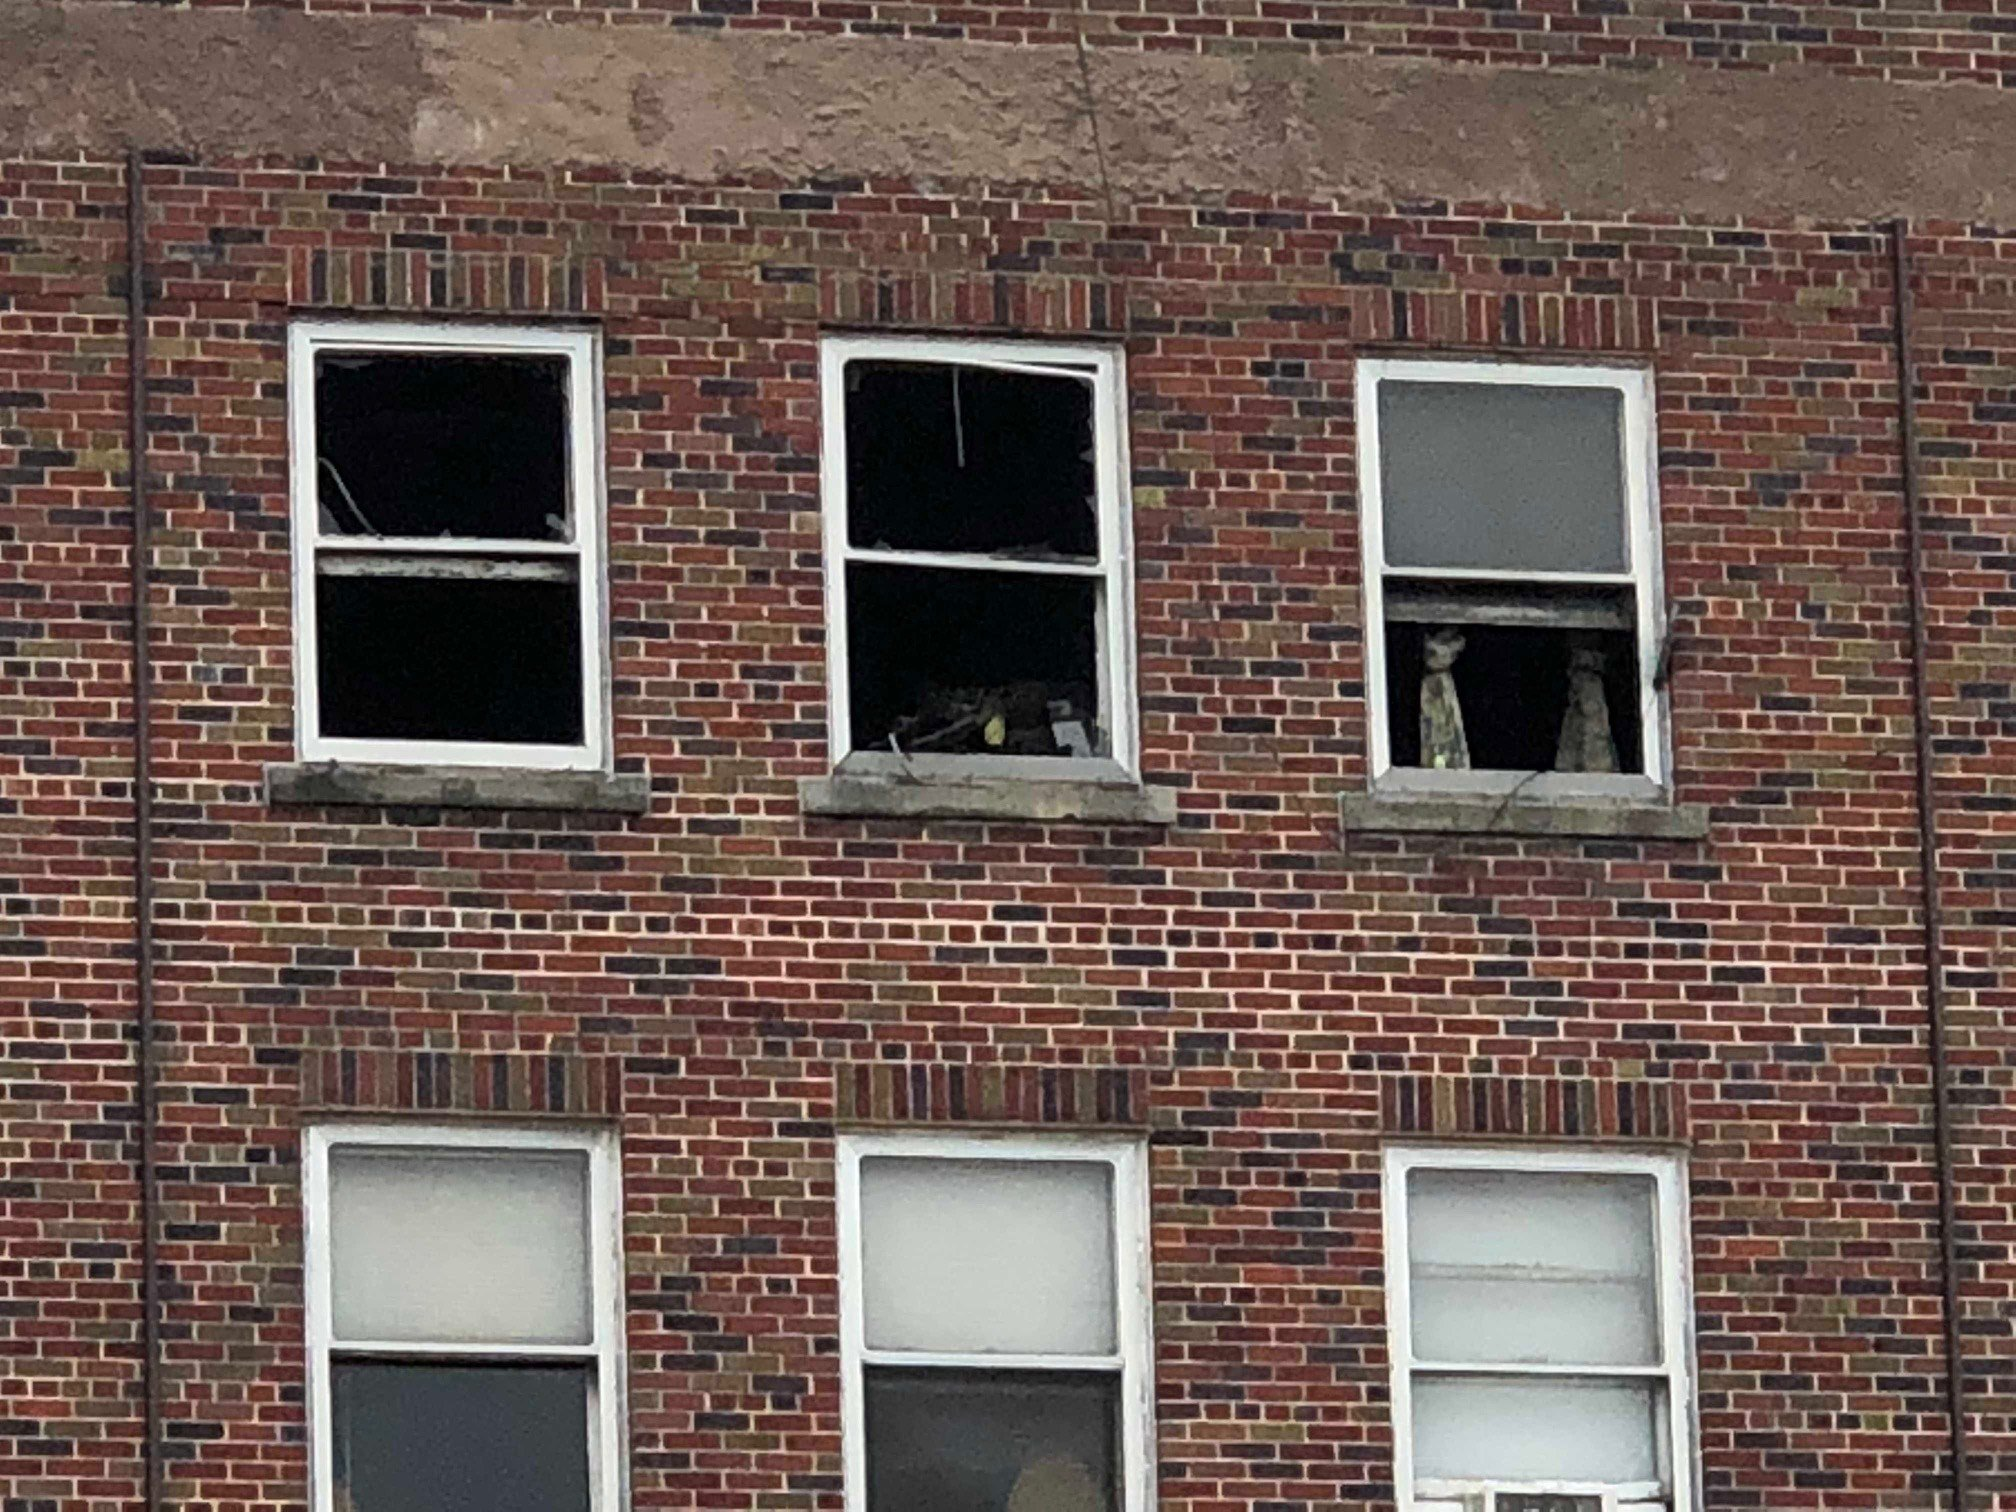 Fire-damaged windows of the Ram Hotel Apartments in Portage.